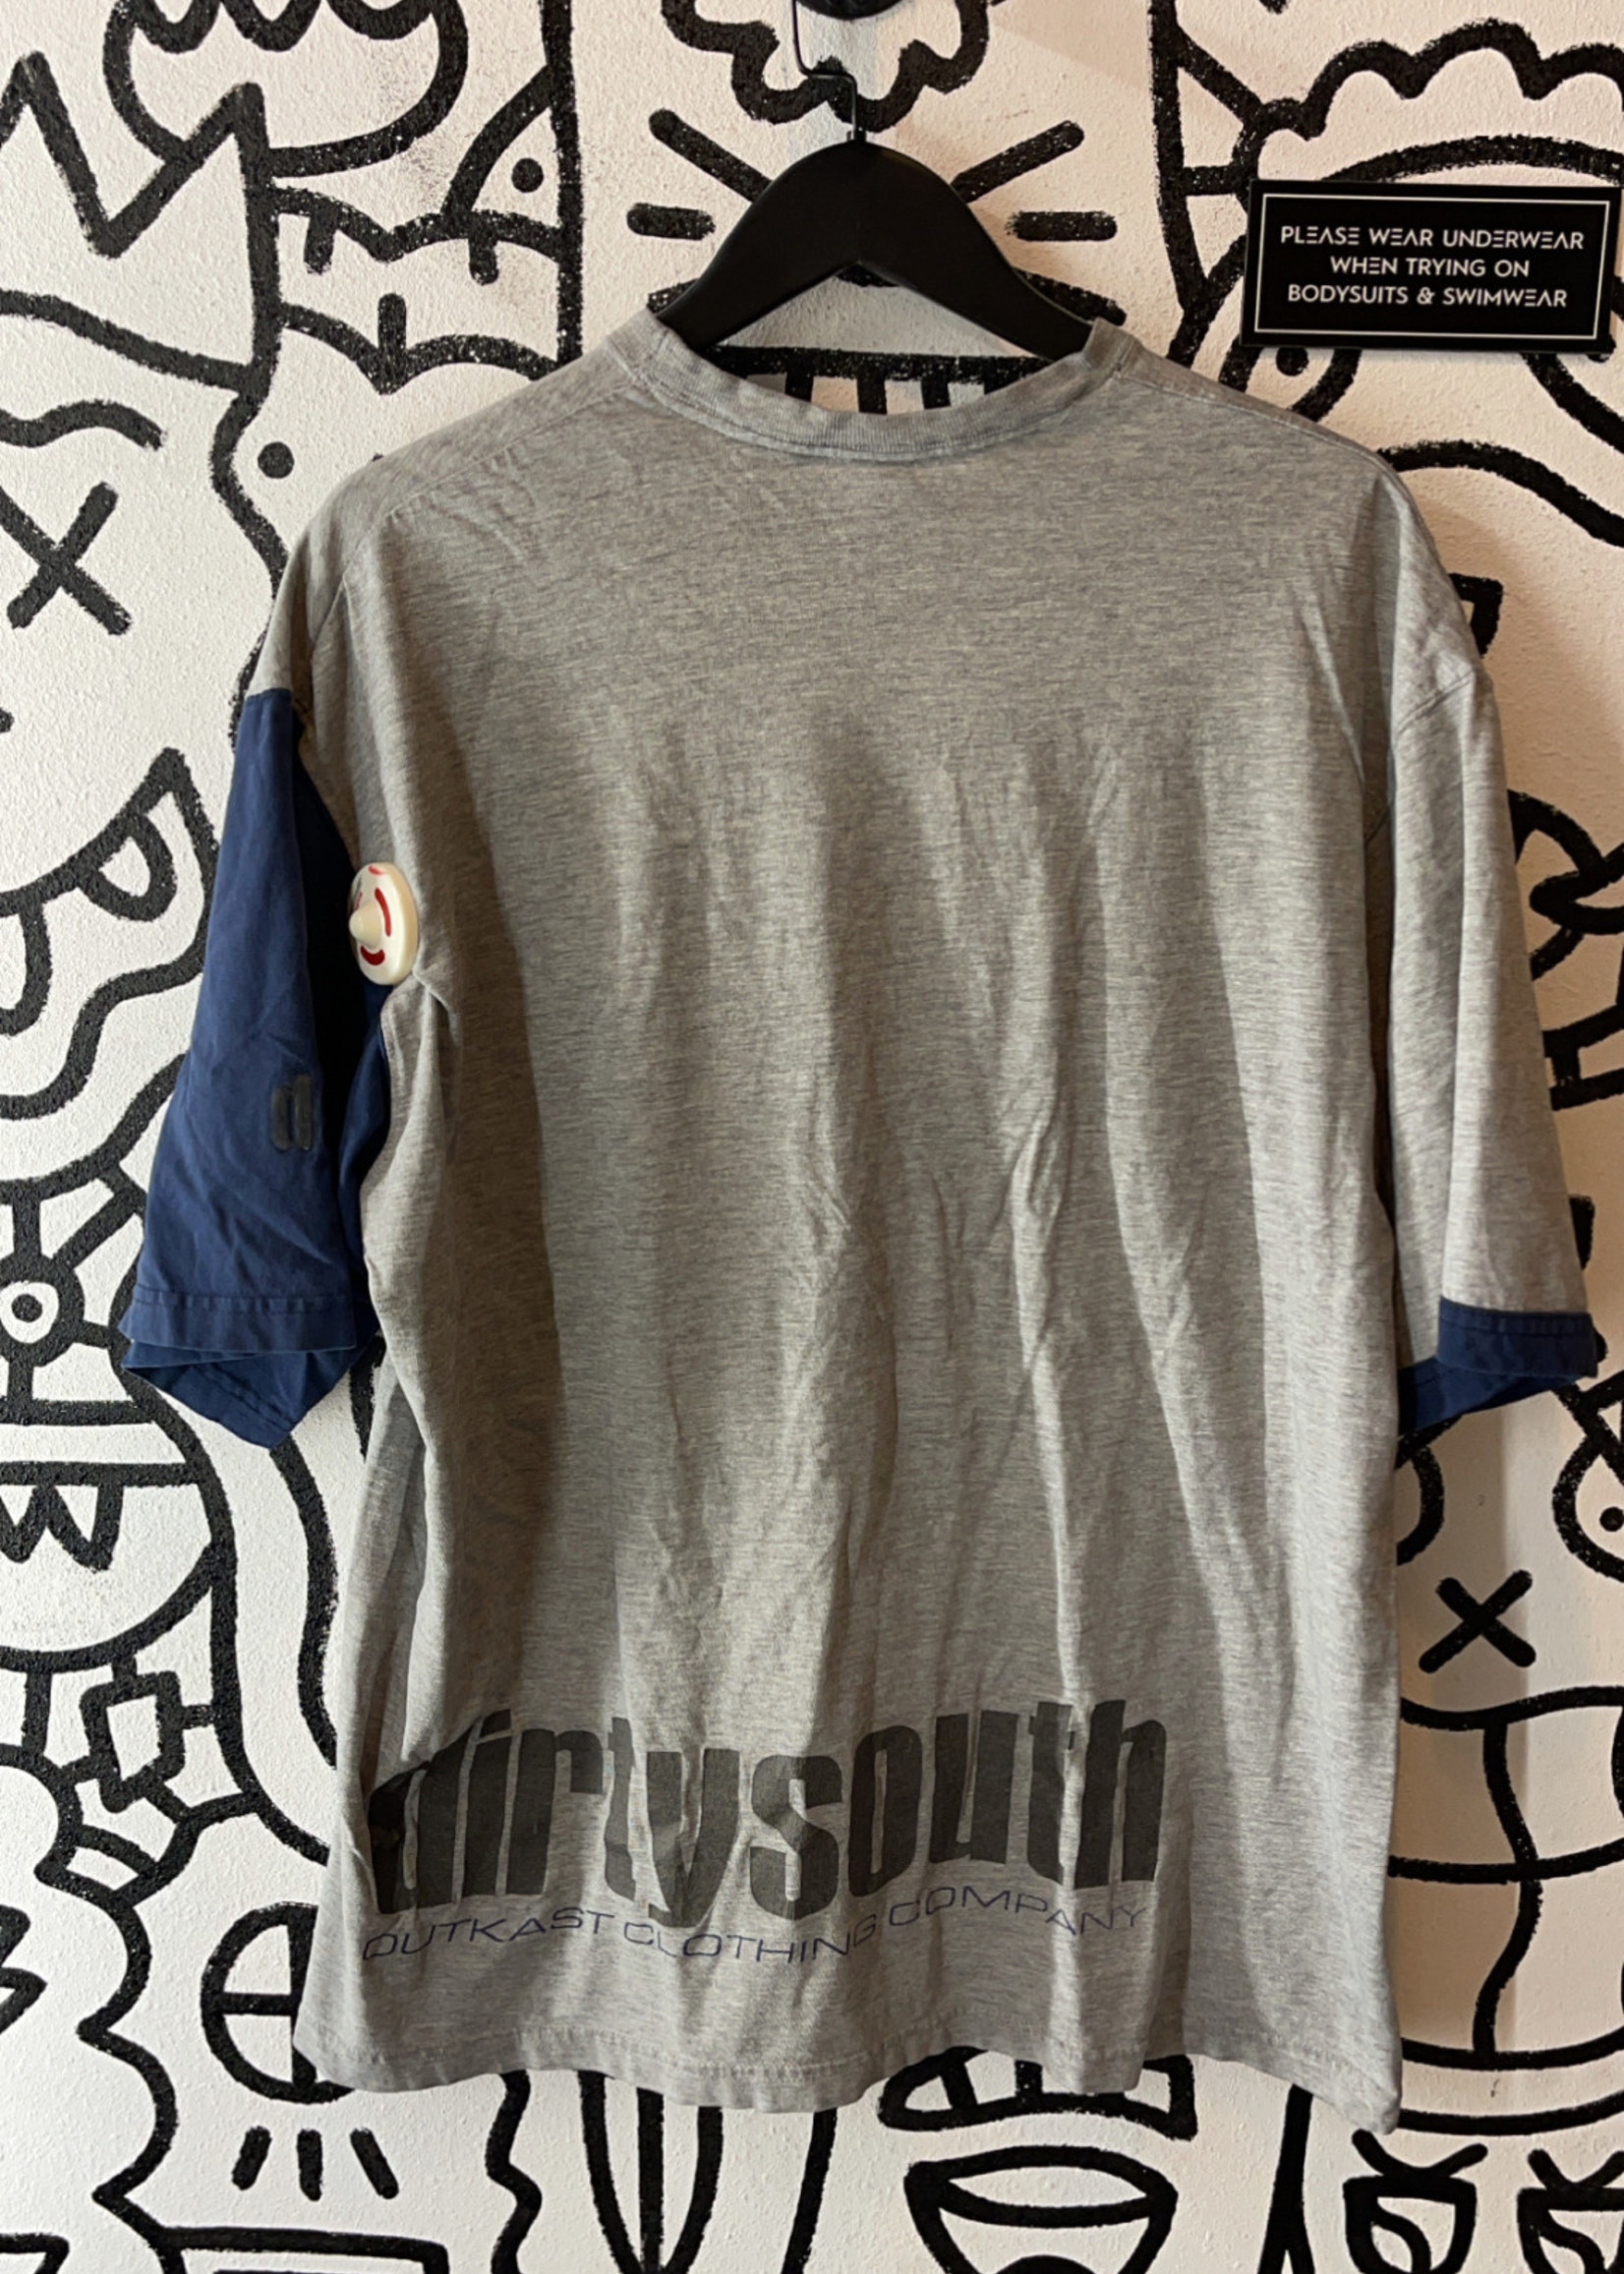 Outkast Clothing Co Grey Distressed Tee XL